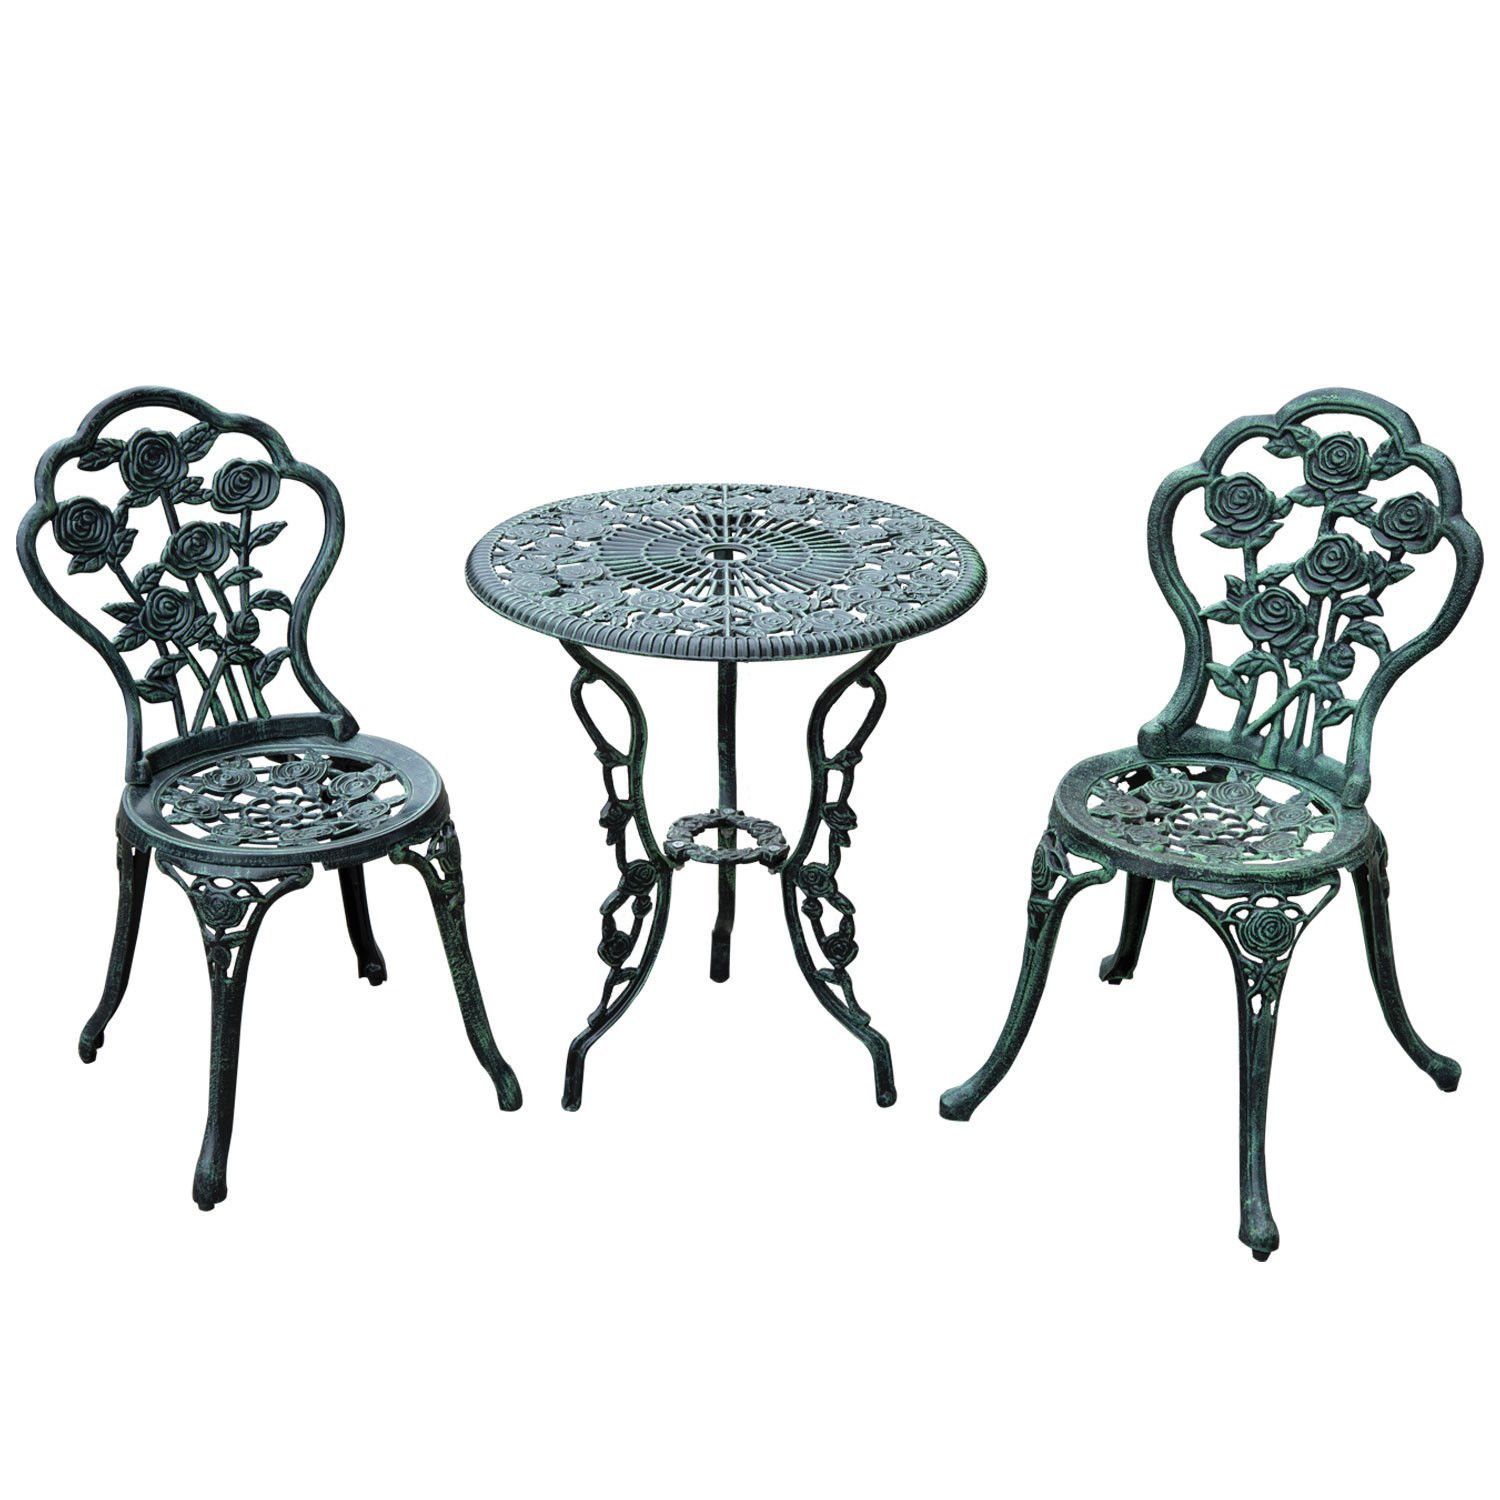 Outsunny 3 Piece Outdoor Cast Iron Patio Furniture Antique Style Dining Bistro Set